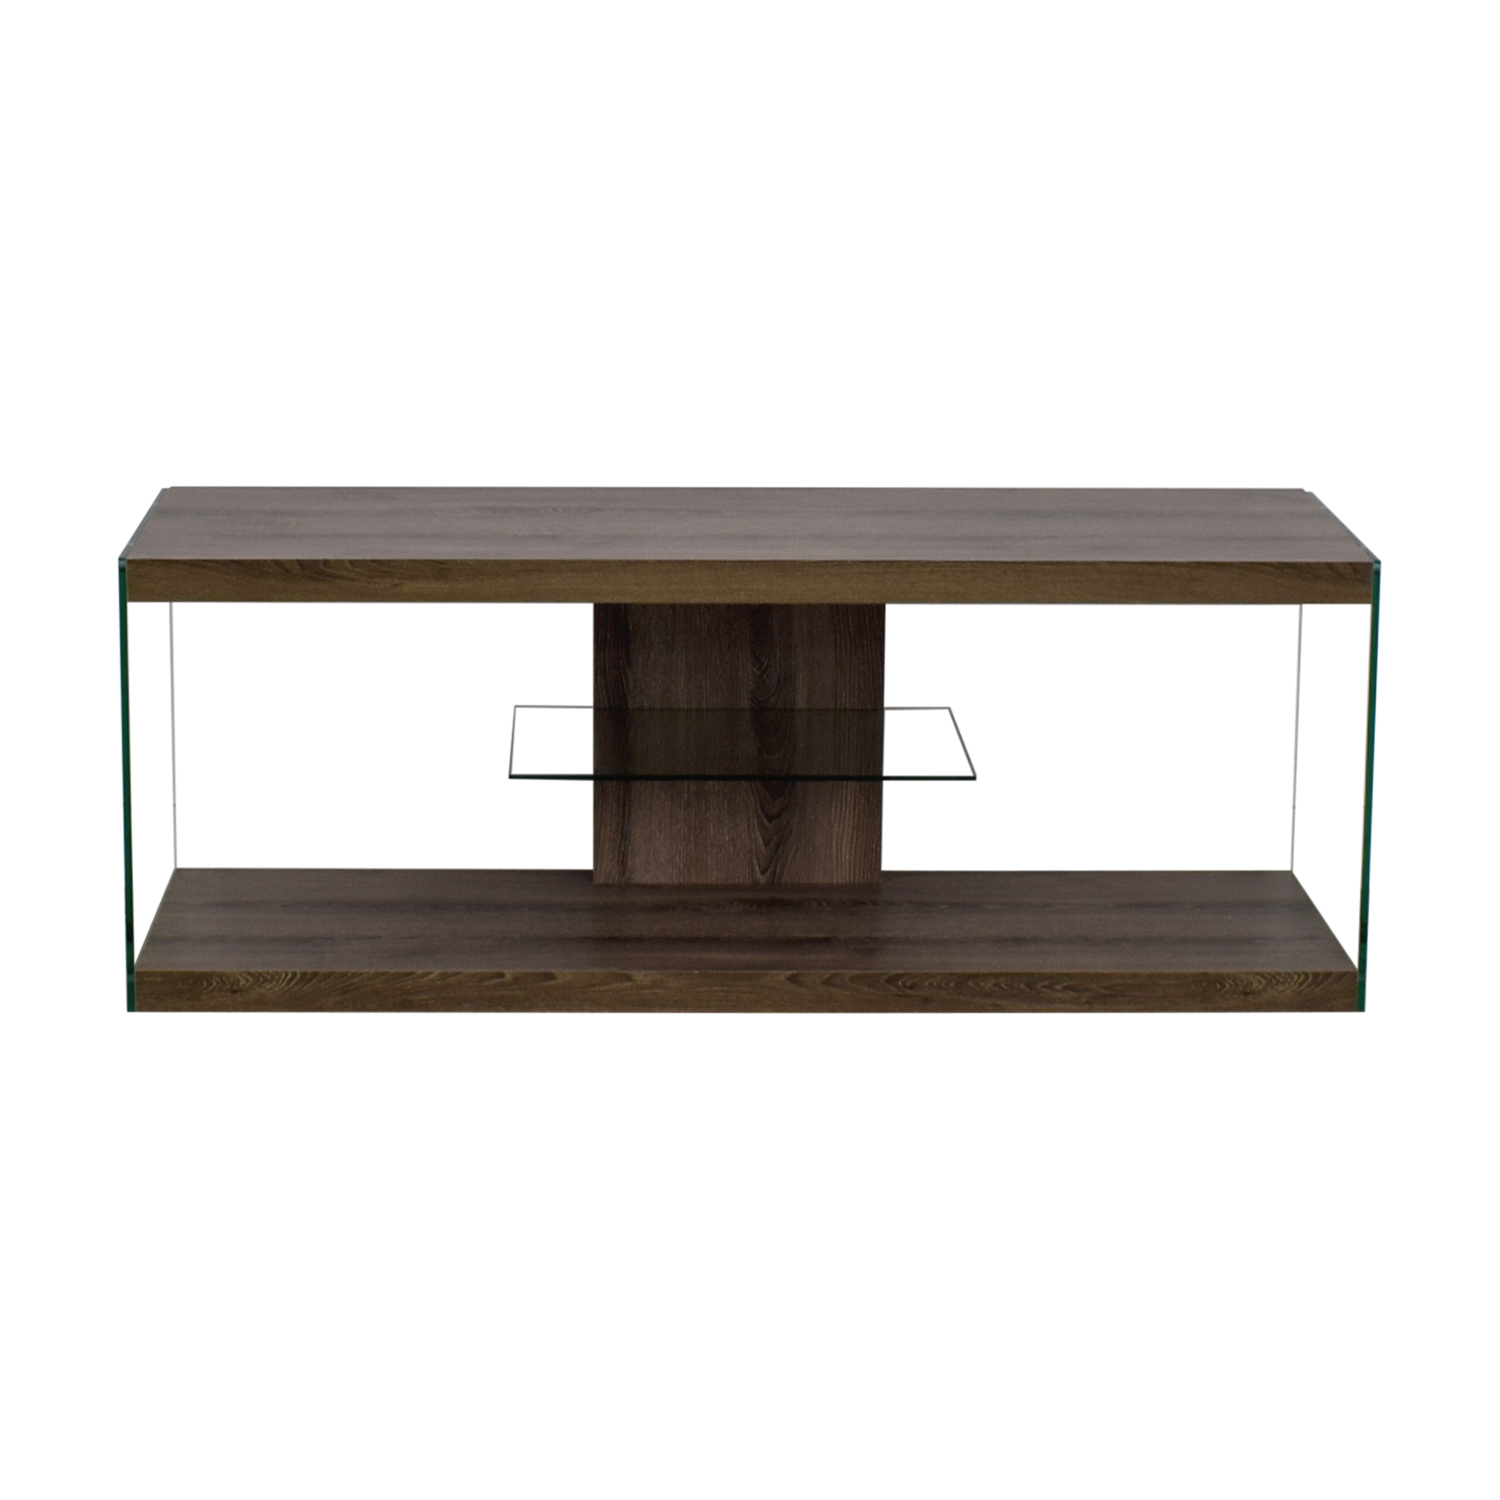 Monarch Specialties Monarch Specialties Wood and Metal TV Stand on sale